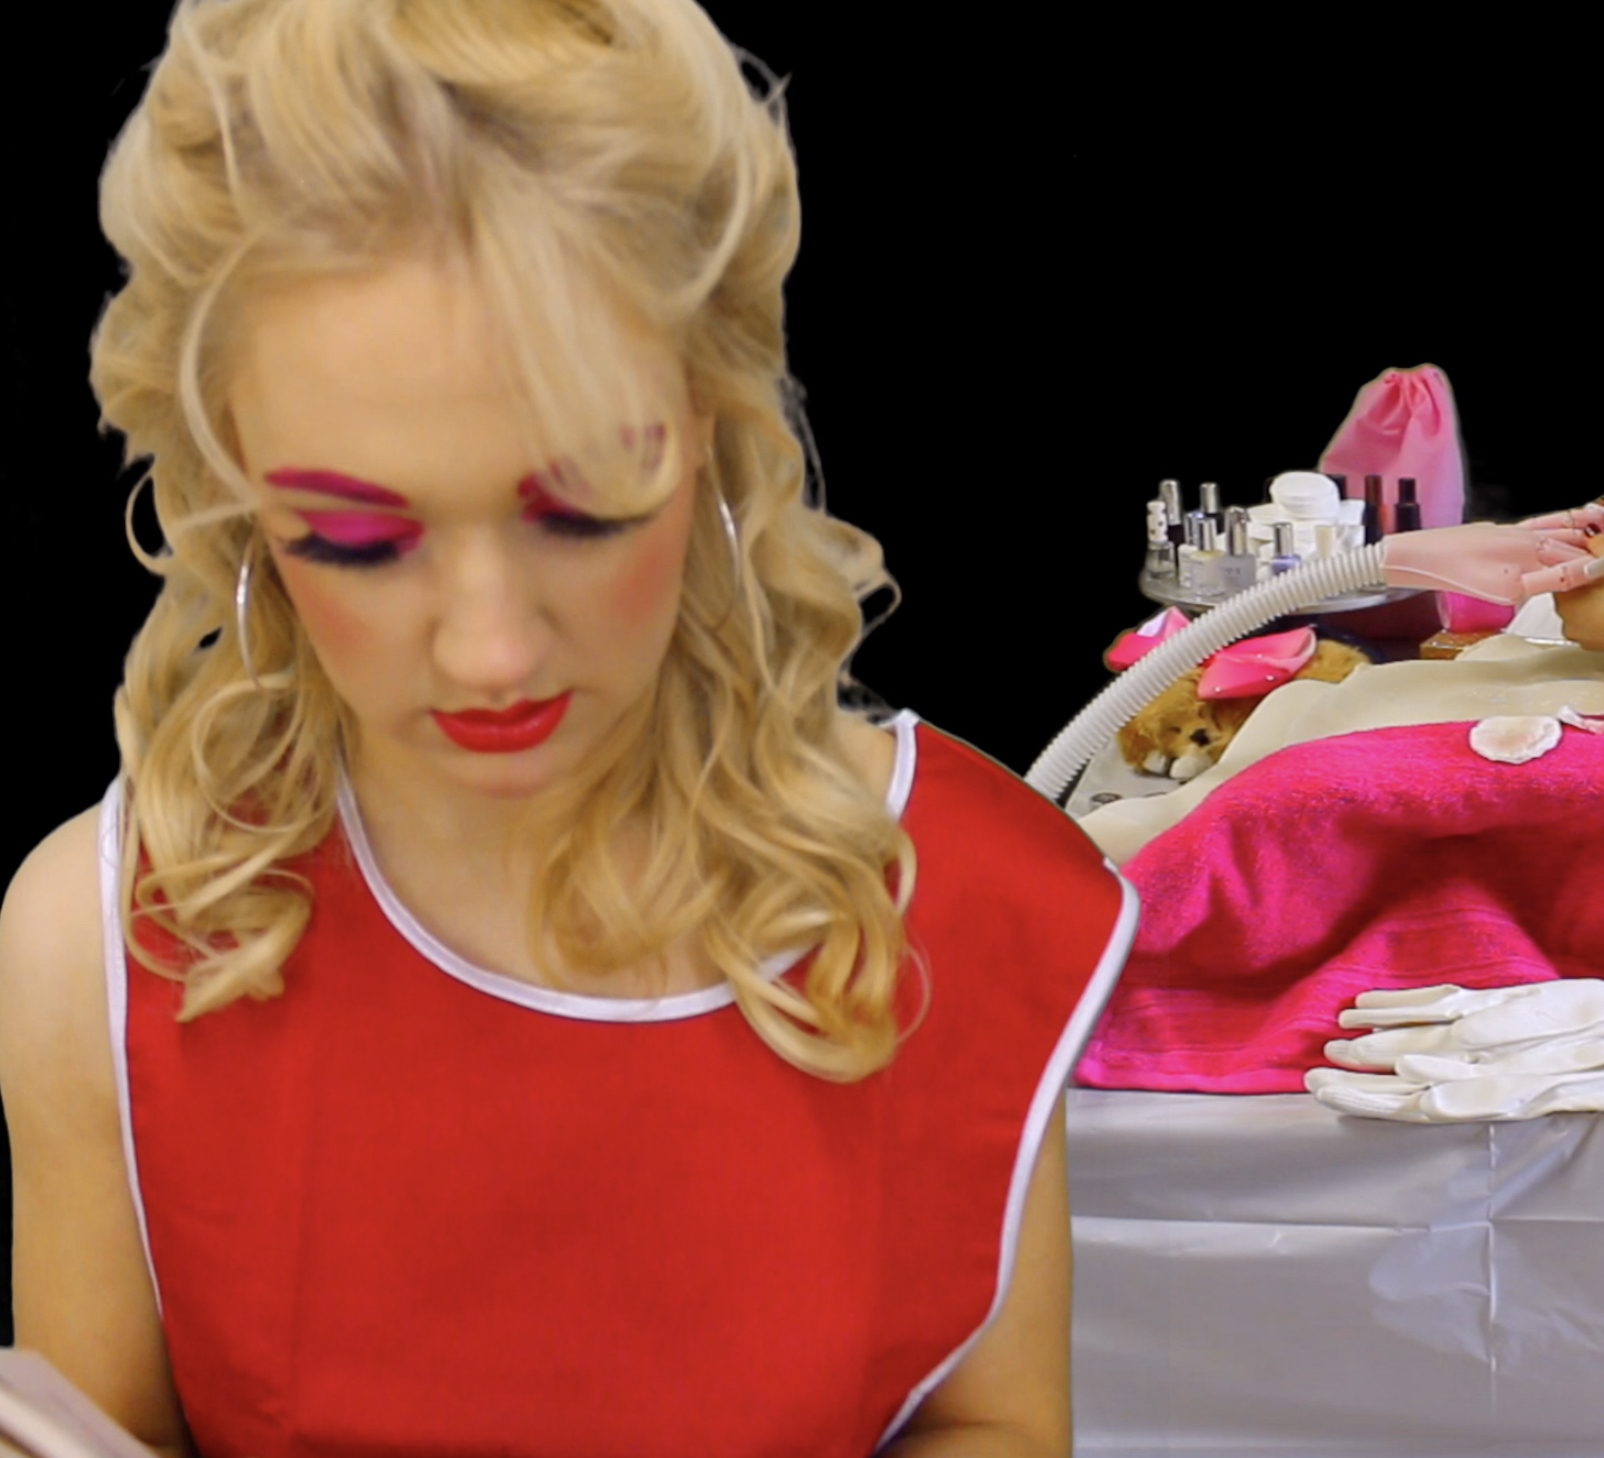 blonde girl dressed in a beautician's uniform reads from Kawabata's short story 'One Arm', while the same girl paints the nails of a mechanical arm.